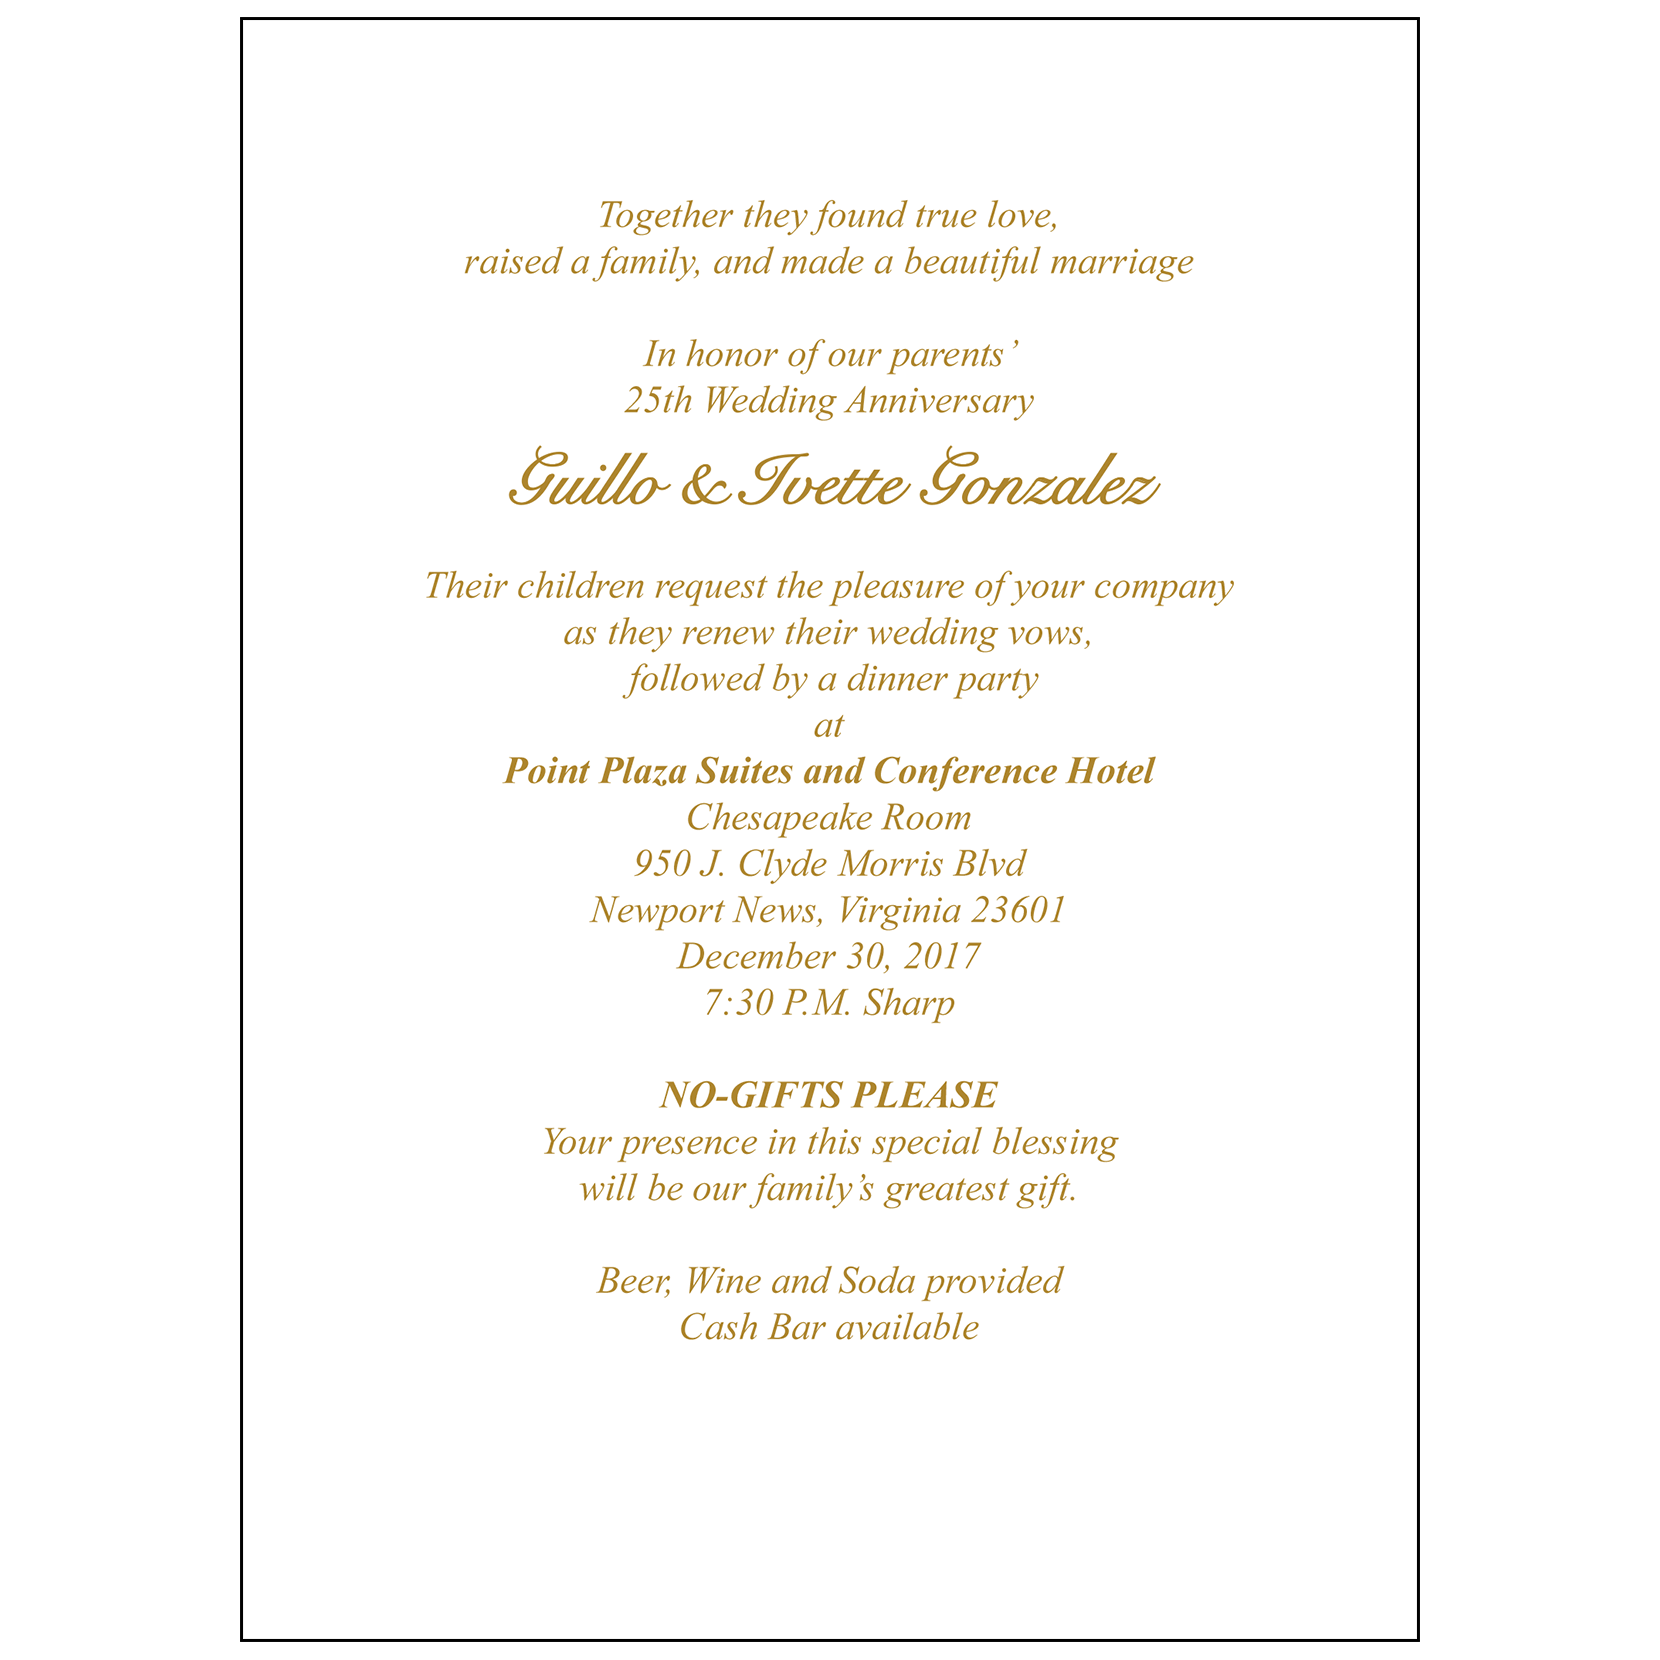 25th Wedding Anniversary Party Invitation, Style 1S – IPV Studio